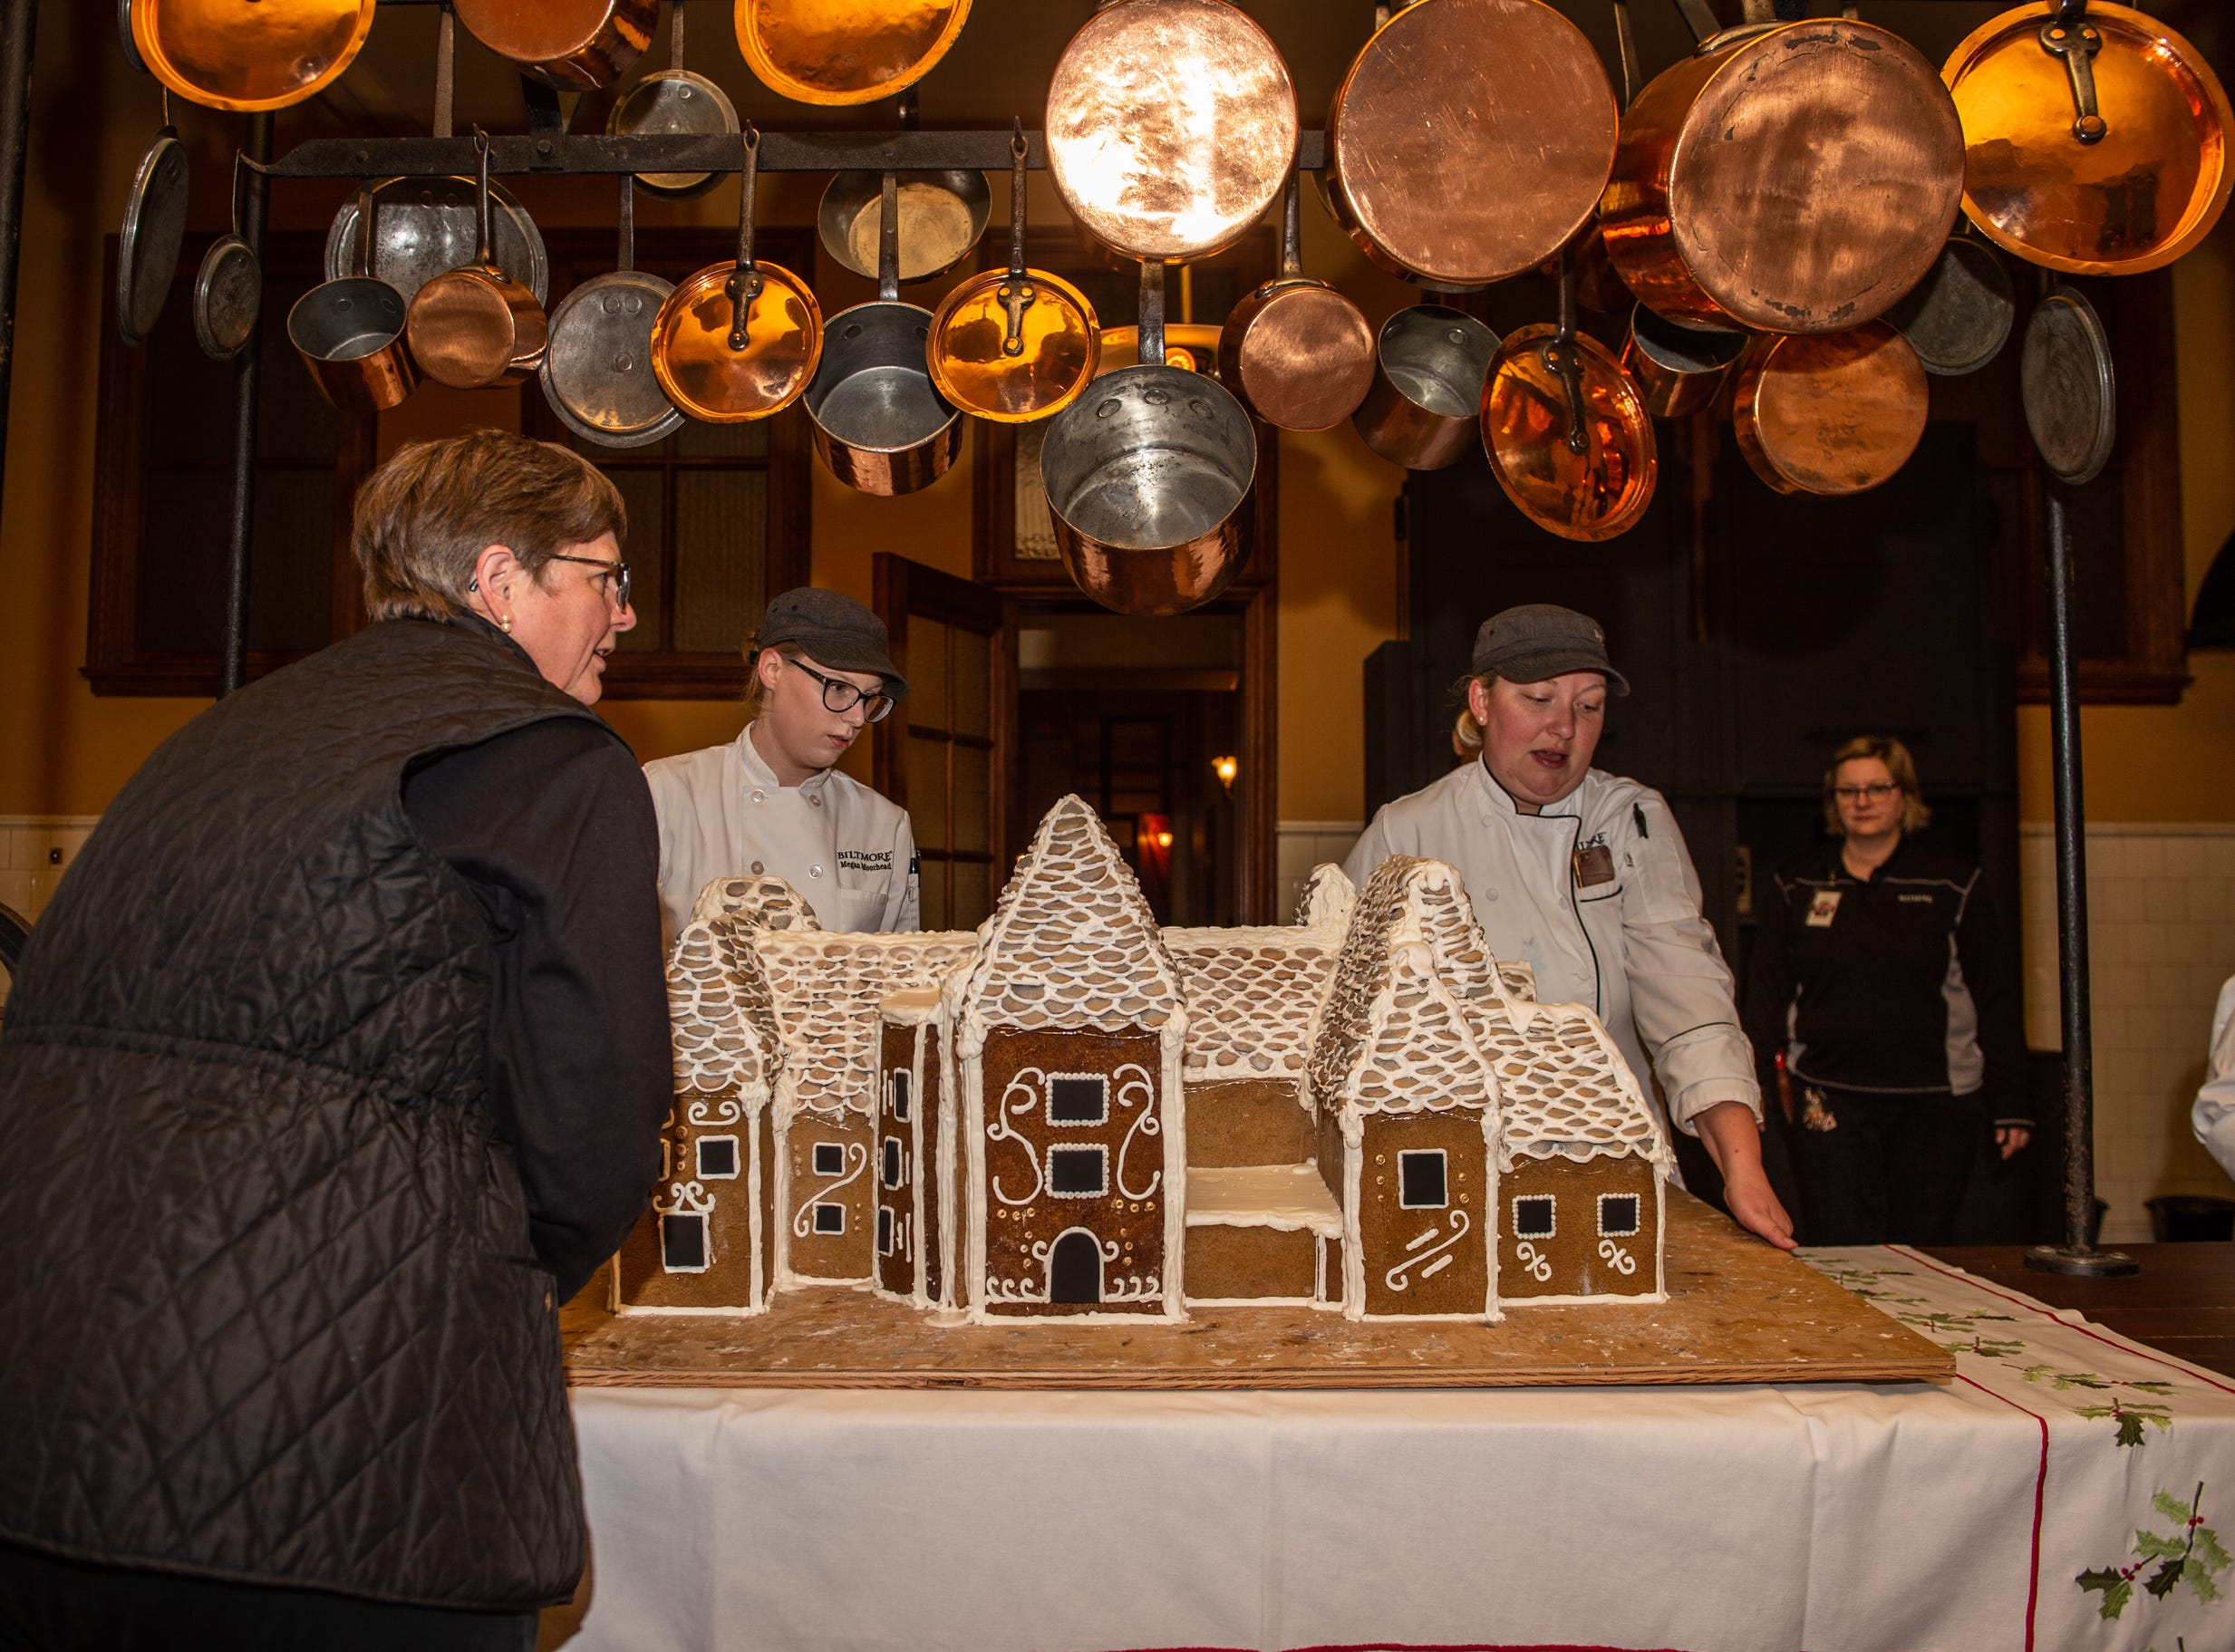 Biltmore floral staffer Mark Quark, left, helps pastry chef Julie Scheibel, right, and pastry demi chef Megan Moorhead, center, position the gingerbread house in the Biltmore House kitchen the morning of Nov. 2, 2018.